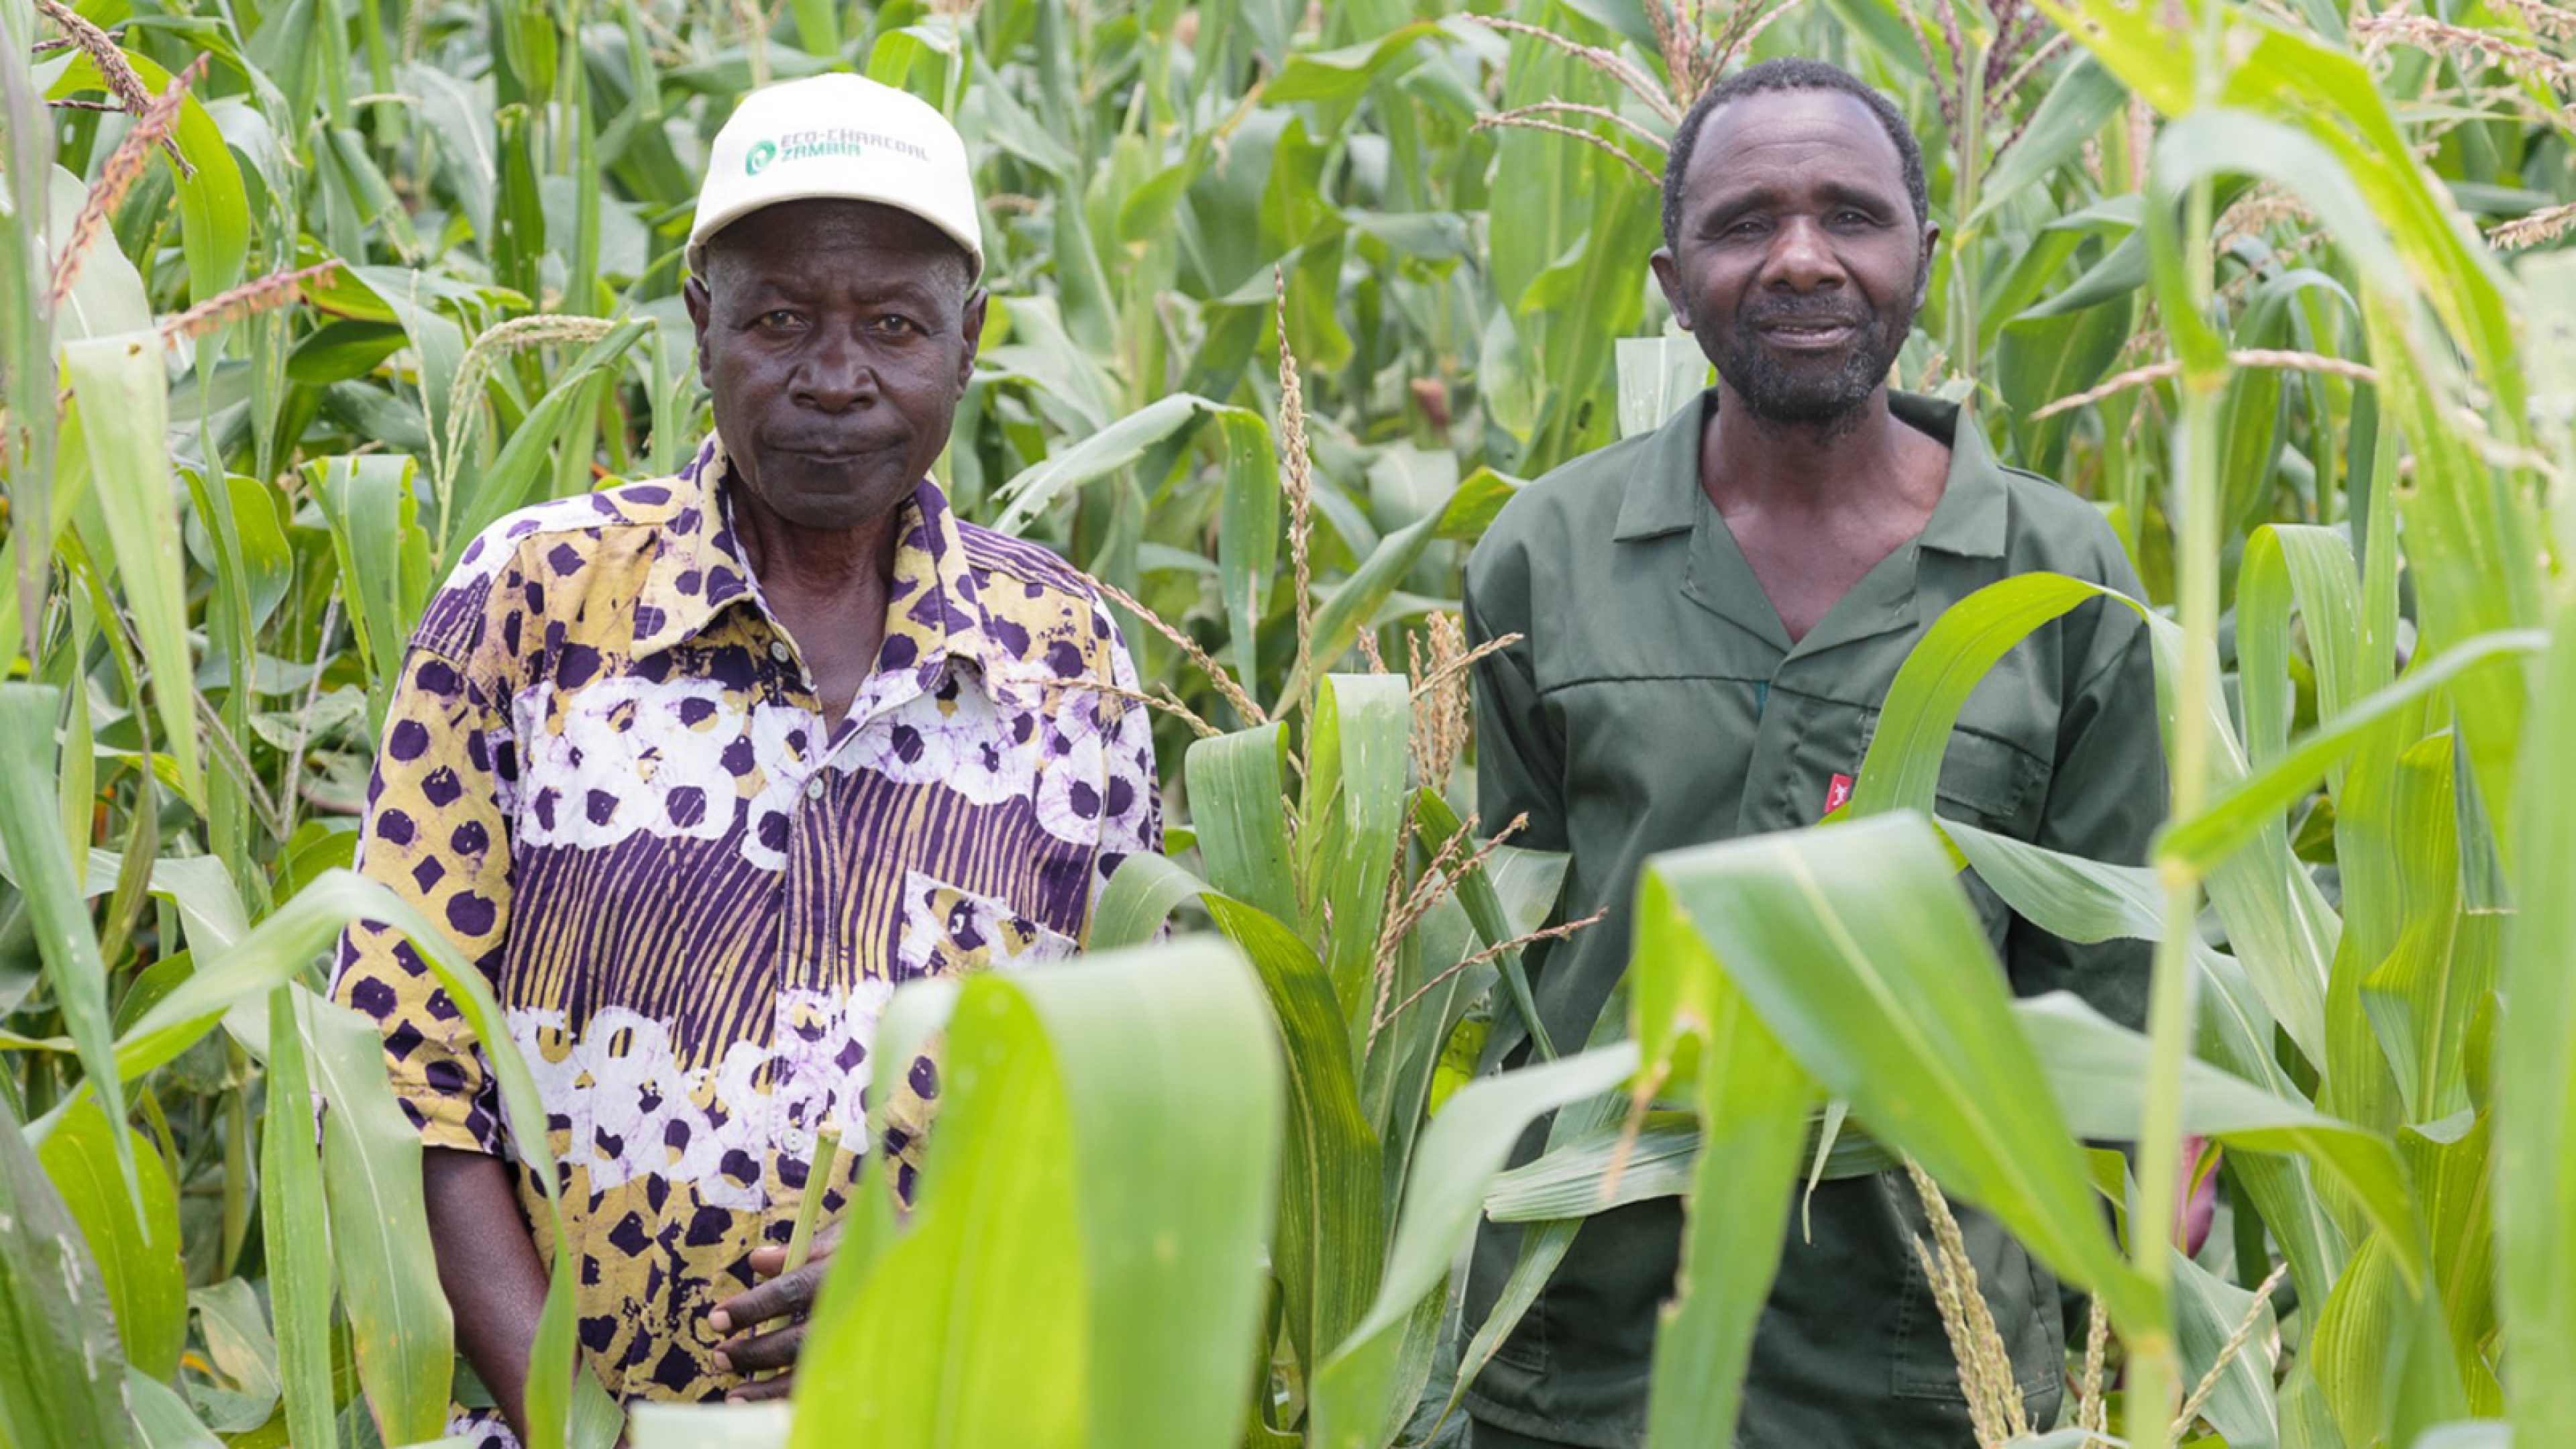 Lower Zambezi REDD+ Project is helping farmers with improved conservation farming practices